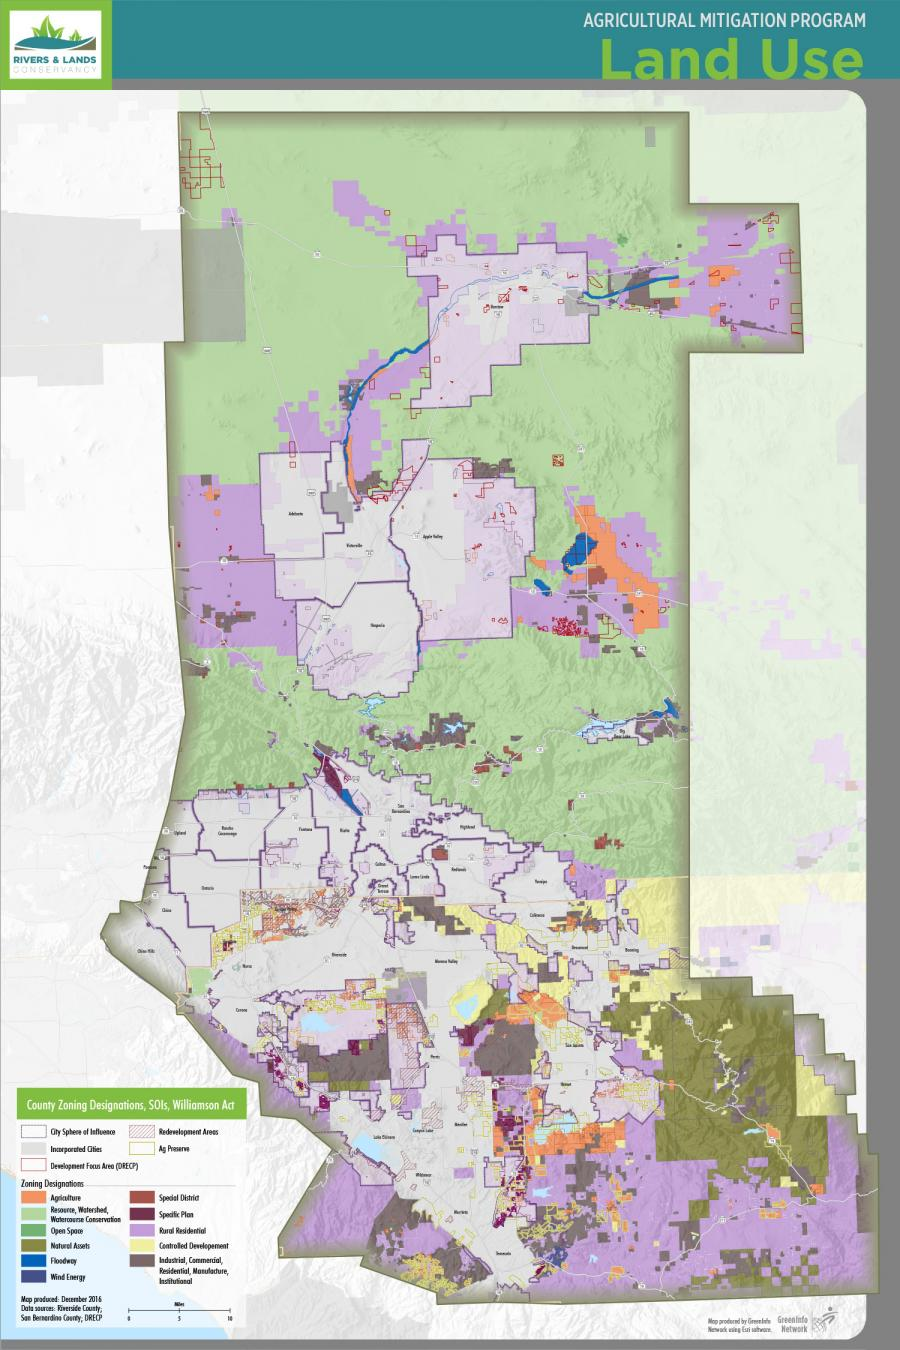 GreenInfo Network   Information and Mapping in the Public ... on brigham city map, fontana map, mt. san antonio map, palm springs map, ventura county map, sacramento map, sonoma co map, santa clara map, downtown l.a. map, moreno valley map, south coast metro map, rancho cucamonga map, banning map, riverside map, imperial valley map, downieville map, canyon crest map, mission gorge map, desert cities map, bernardino county map,